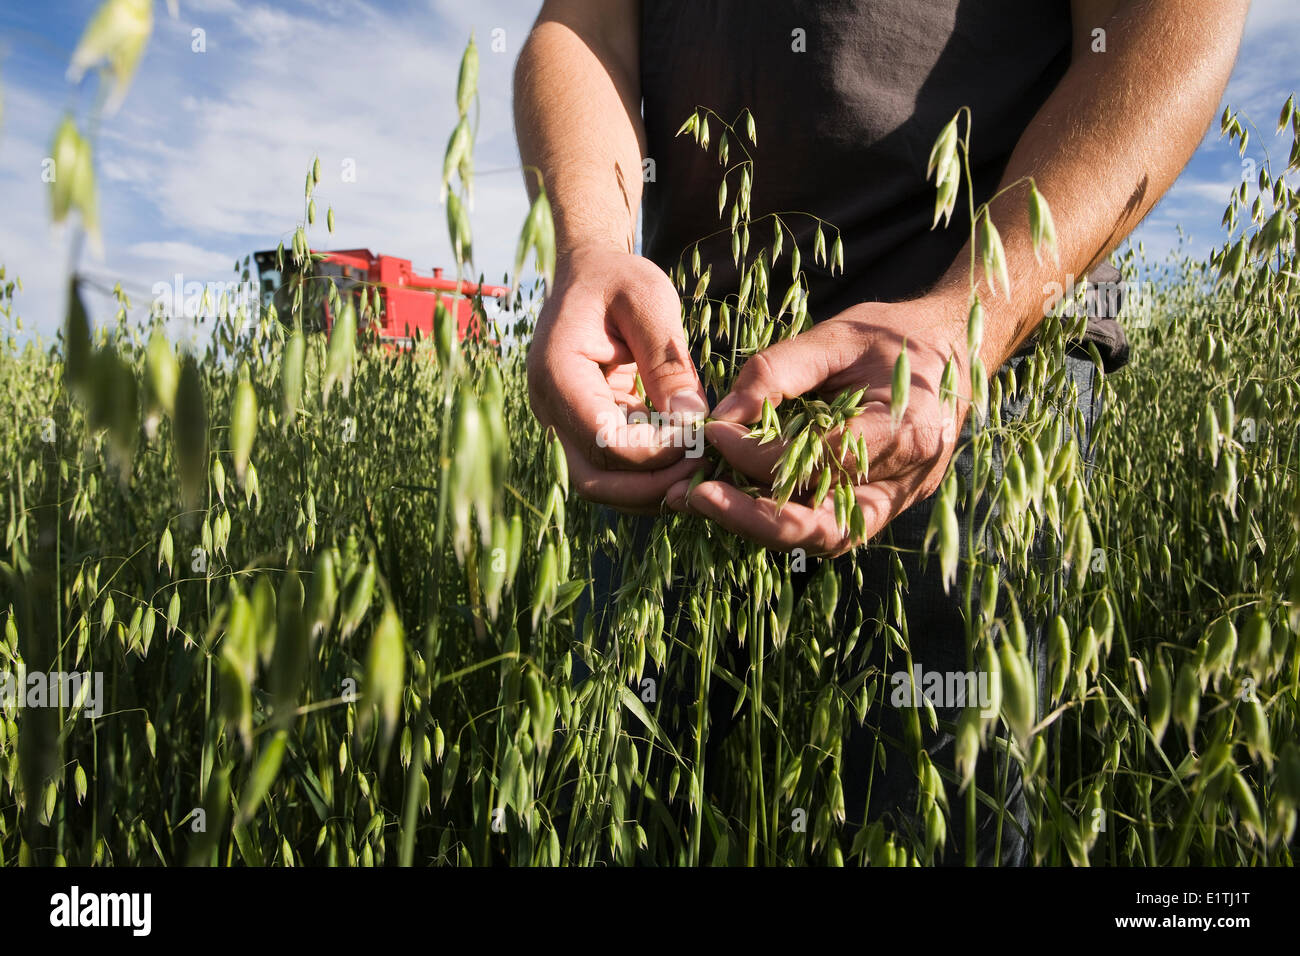 Farmer's hands inspecting oat crops with red combine in background. - Stock Image